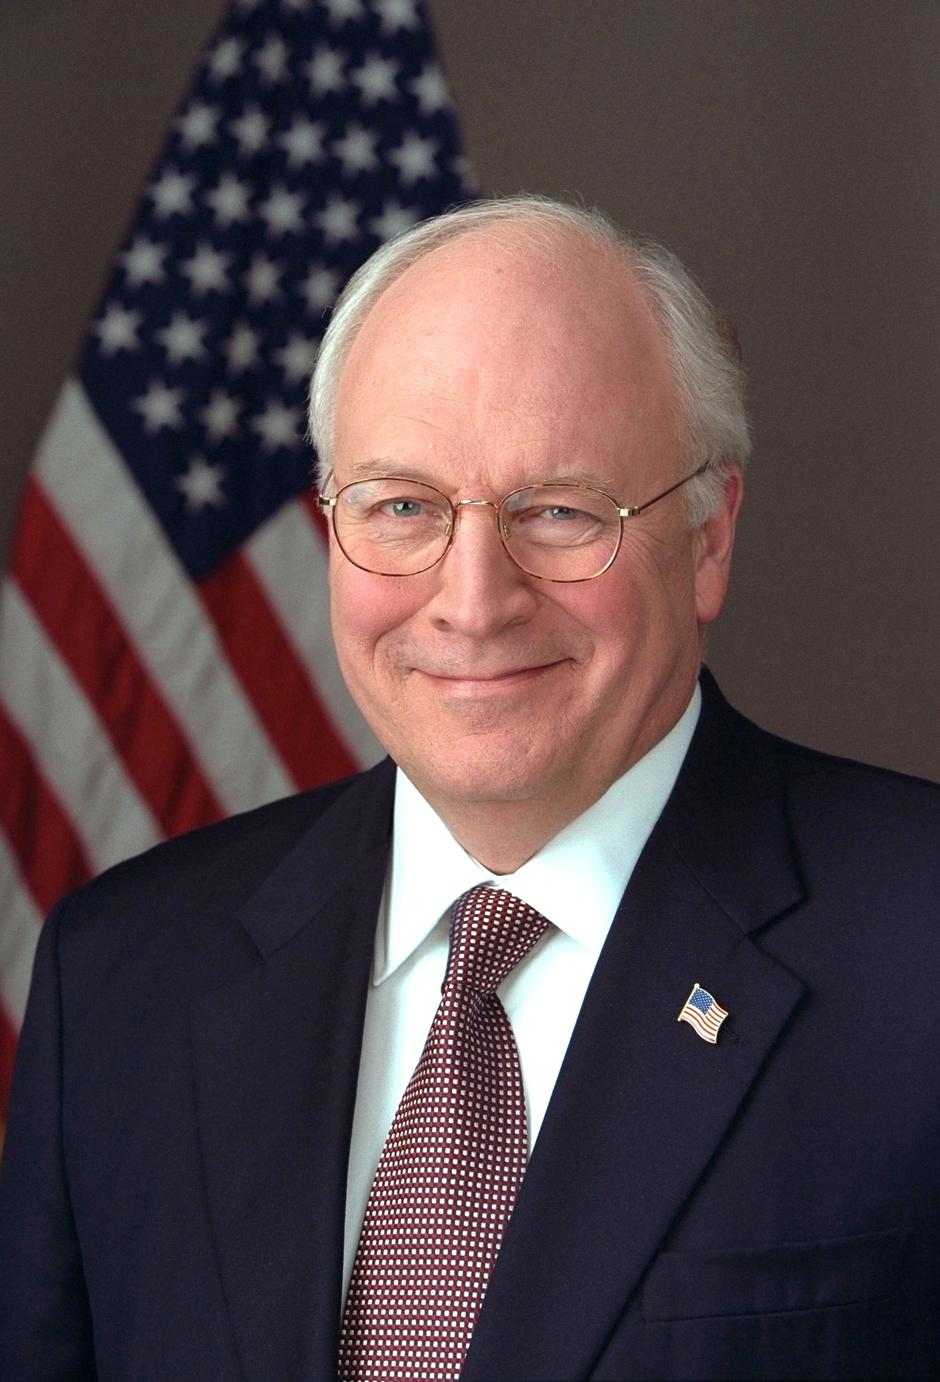 Dick Cheney | Author: U.S. Air Force/ public domain